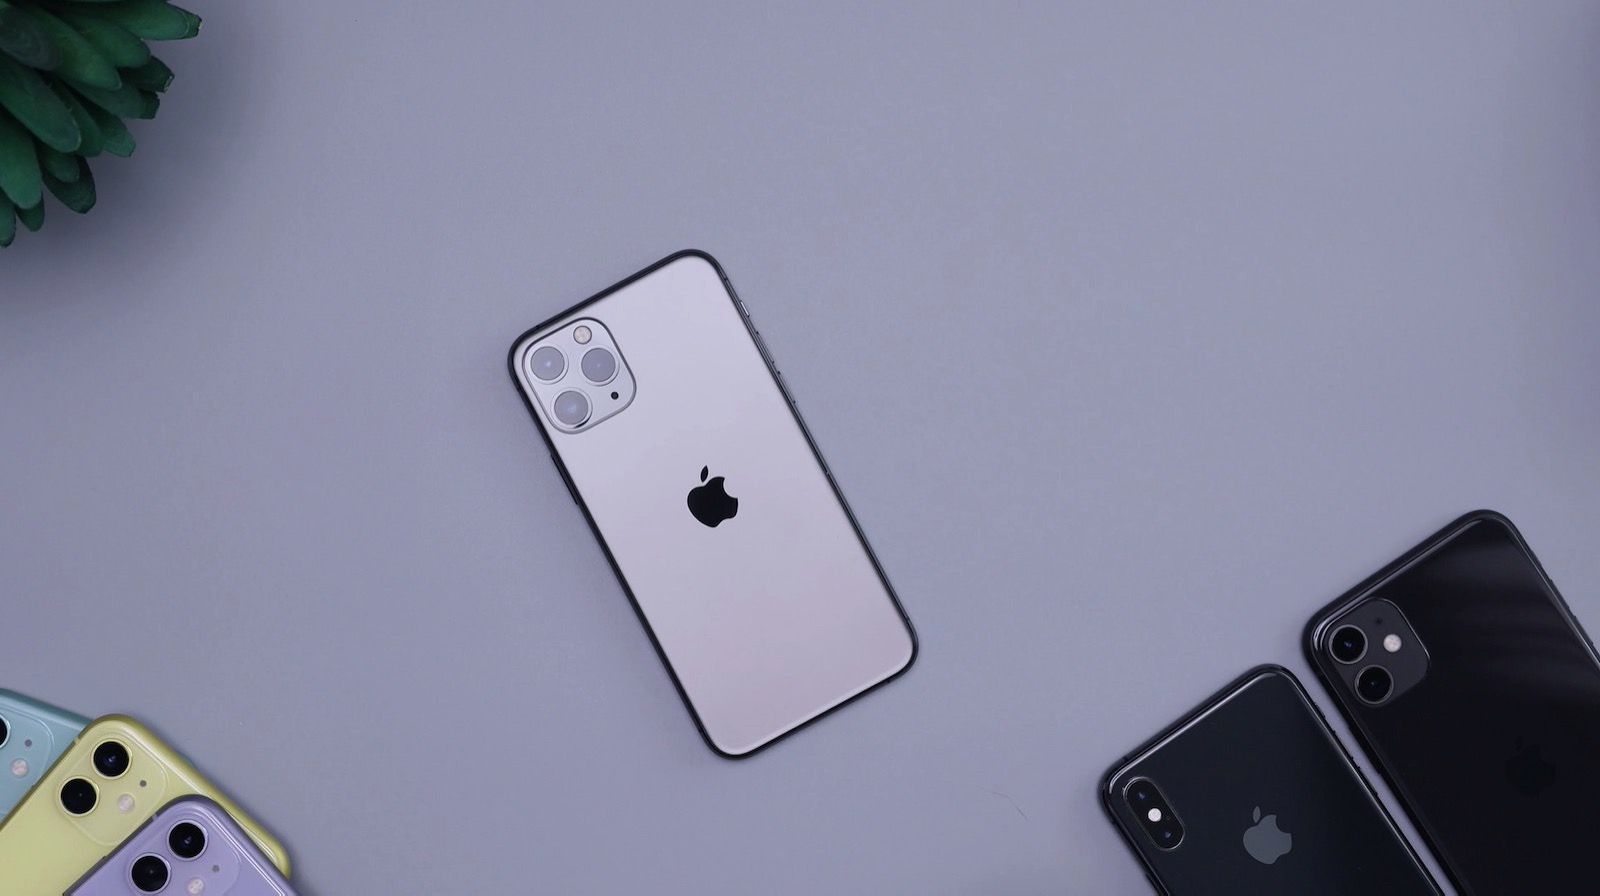 Daniel romero C0sBET w8UU unsplash iphone 11 series